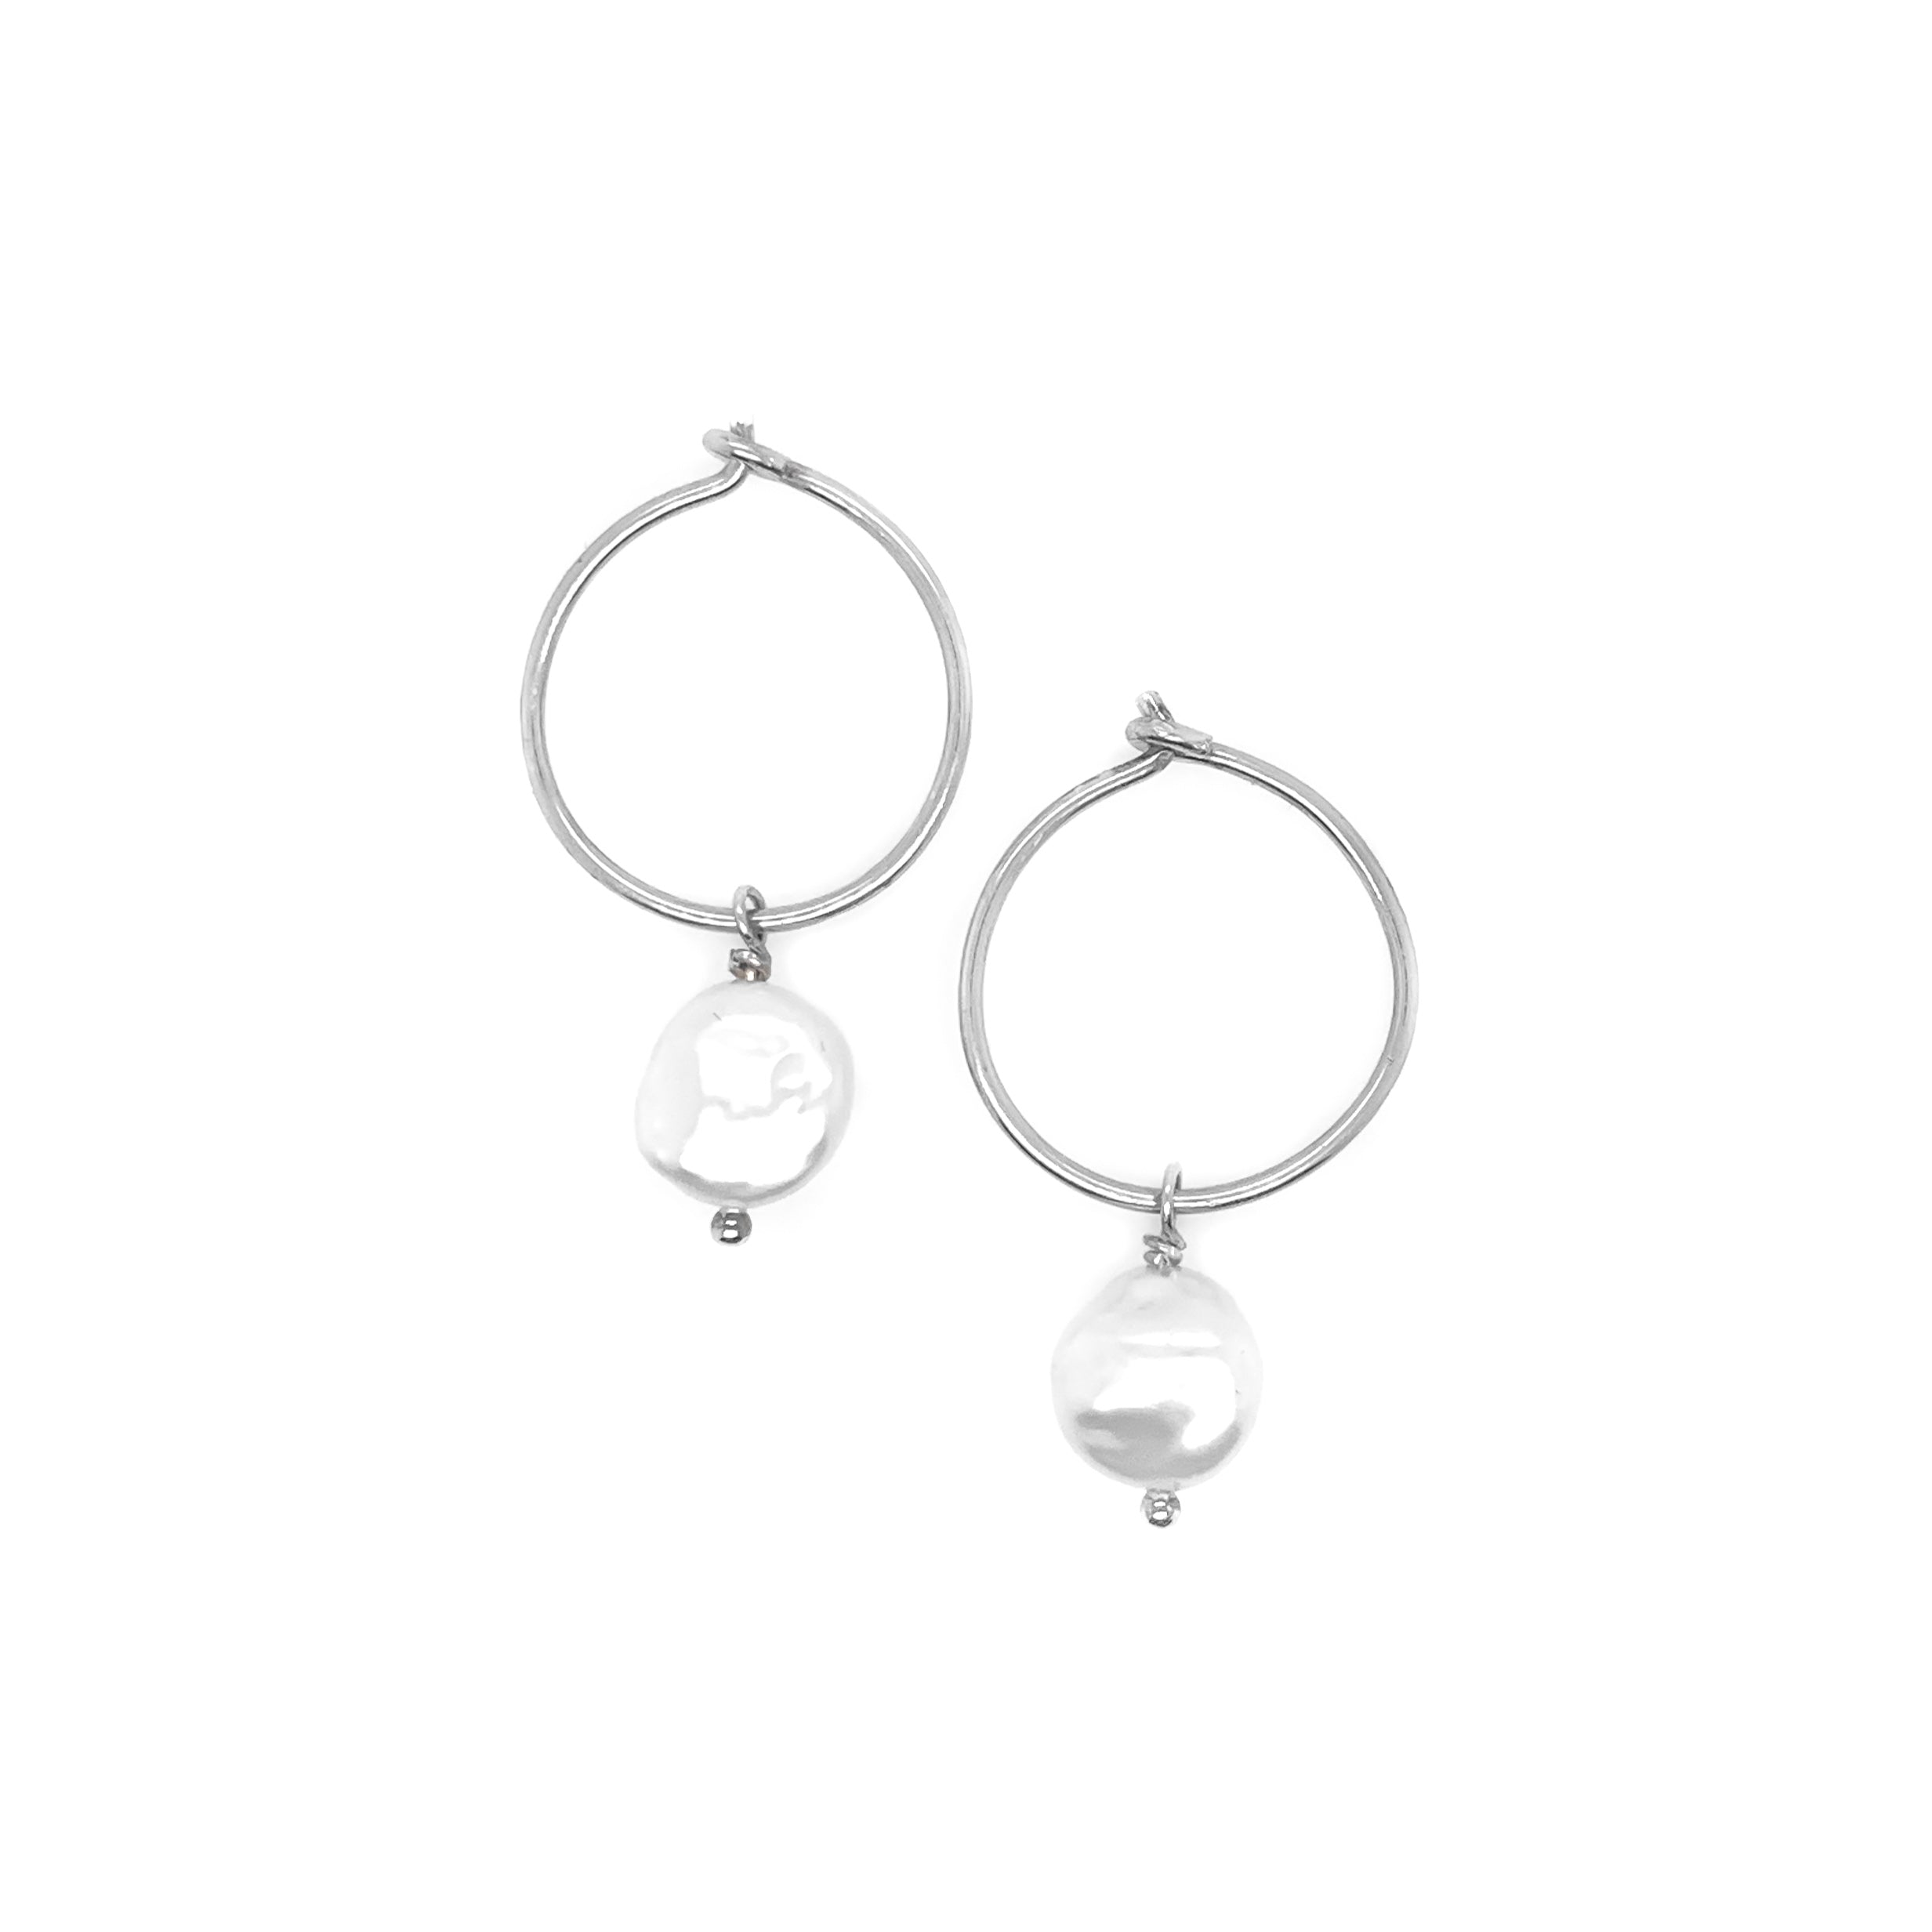 a set of small silver hoop earrings with a single pearl shown on a white background